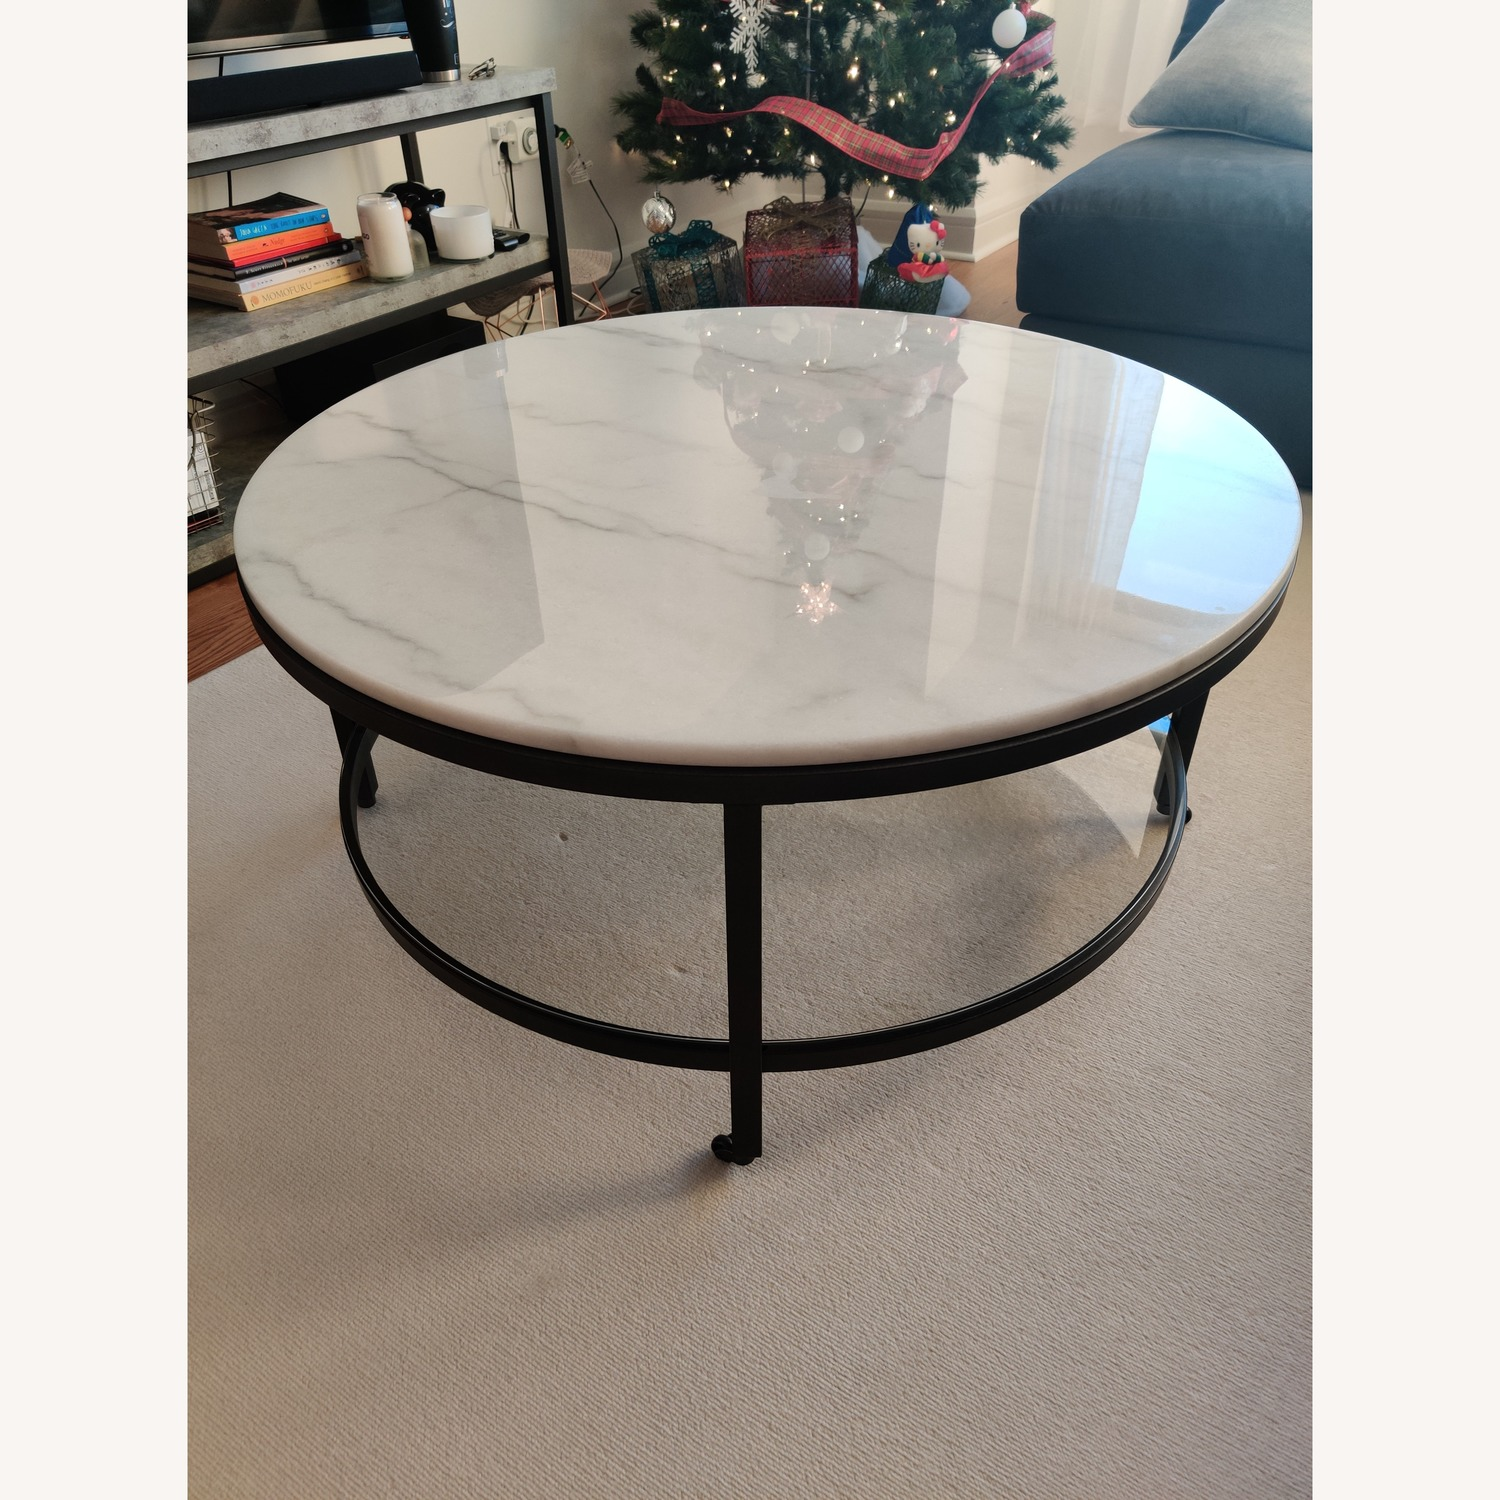 Macy's Stratus Round Marble Coffee Table - image-2